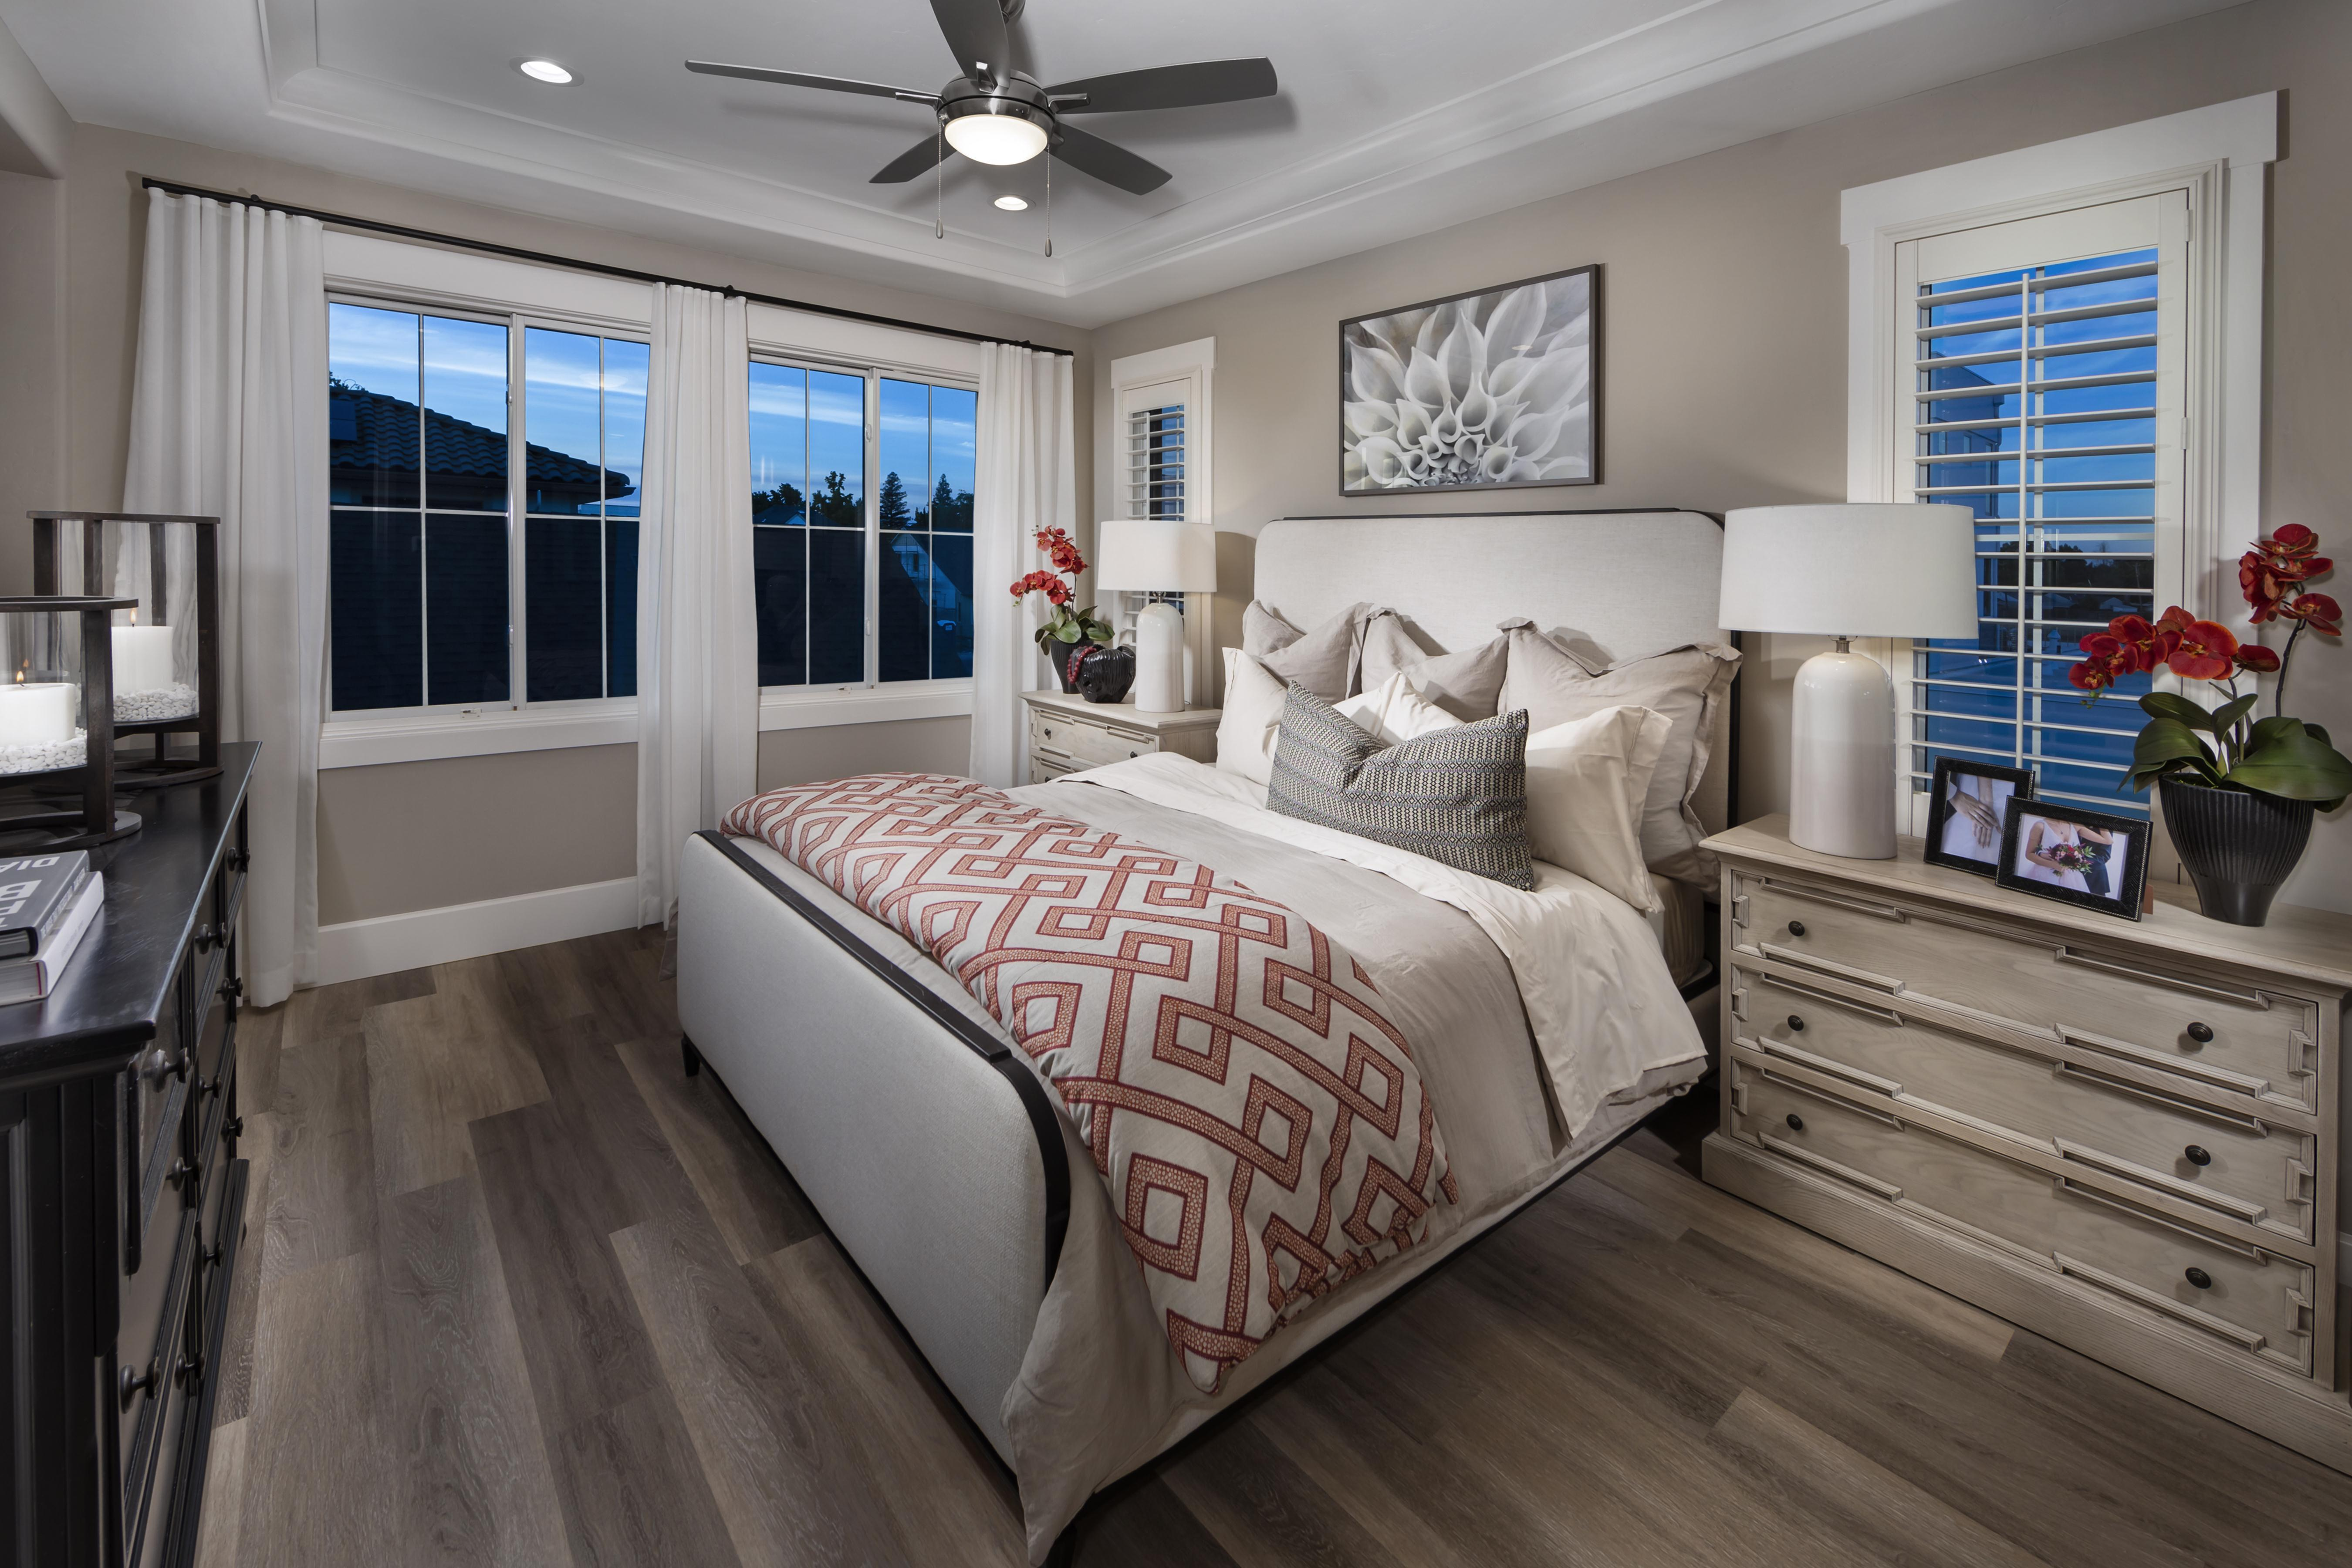 Bedroom featured in the Residence Two By Tim Lewis Communities in Sacramento, CA